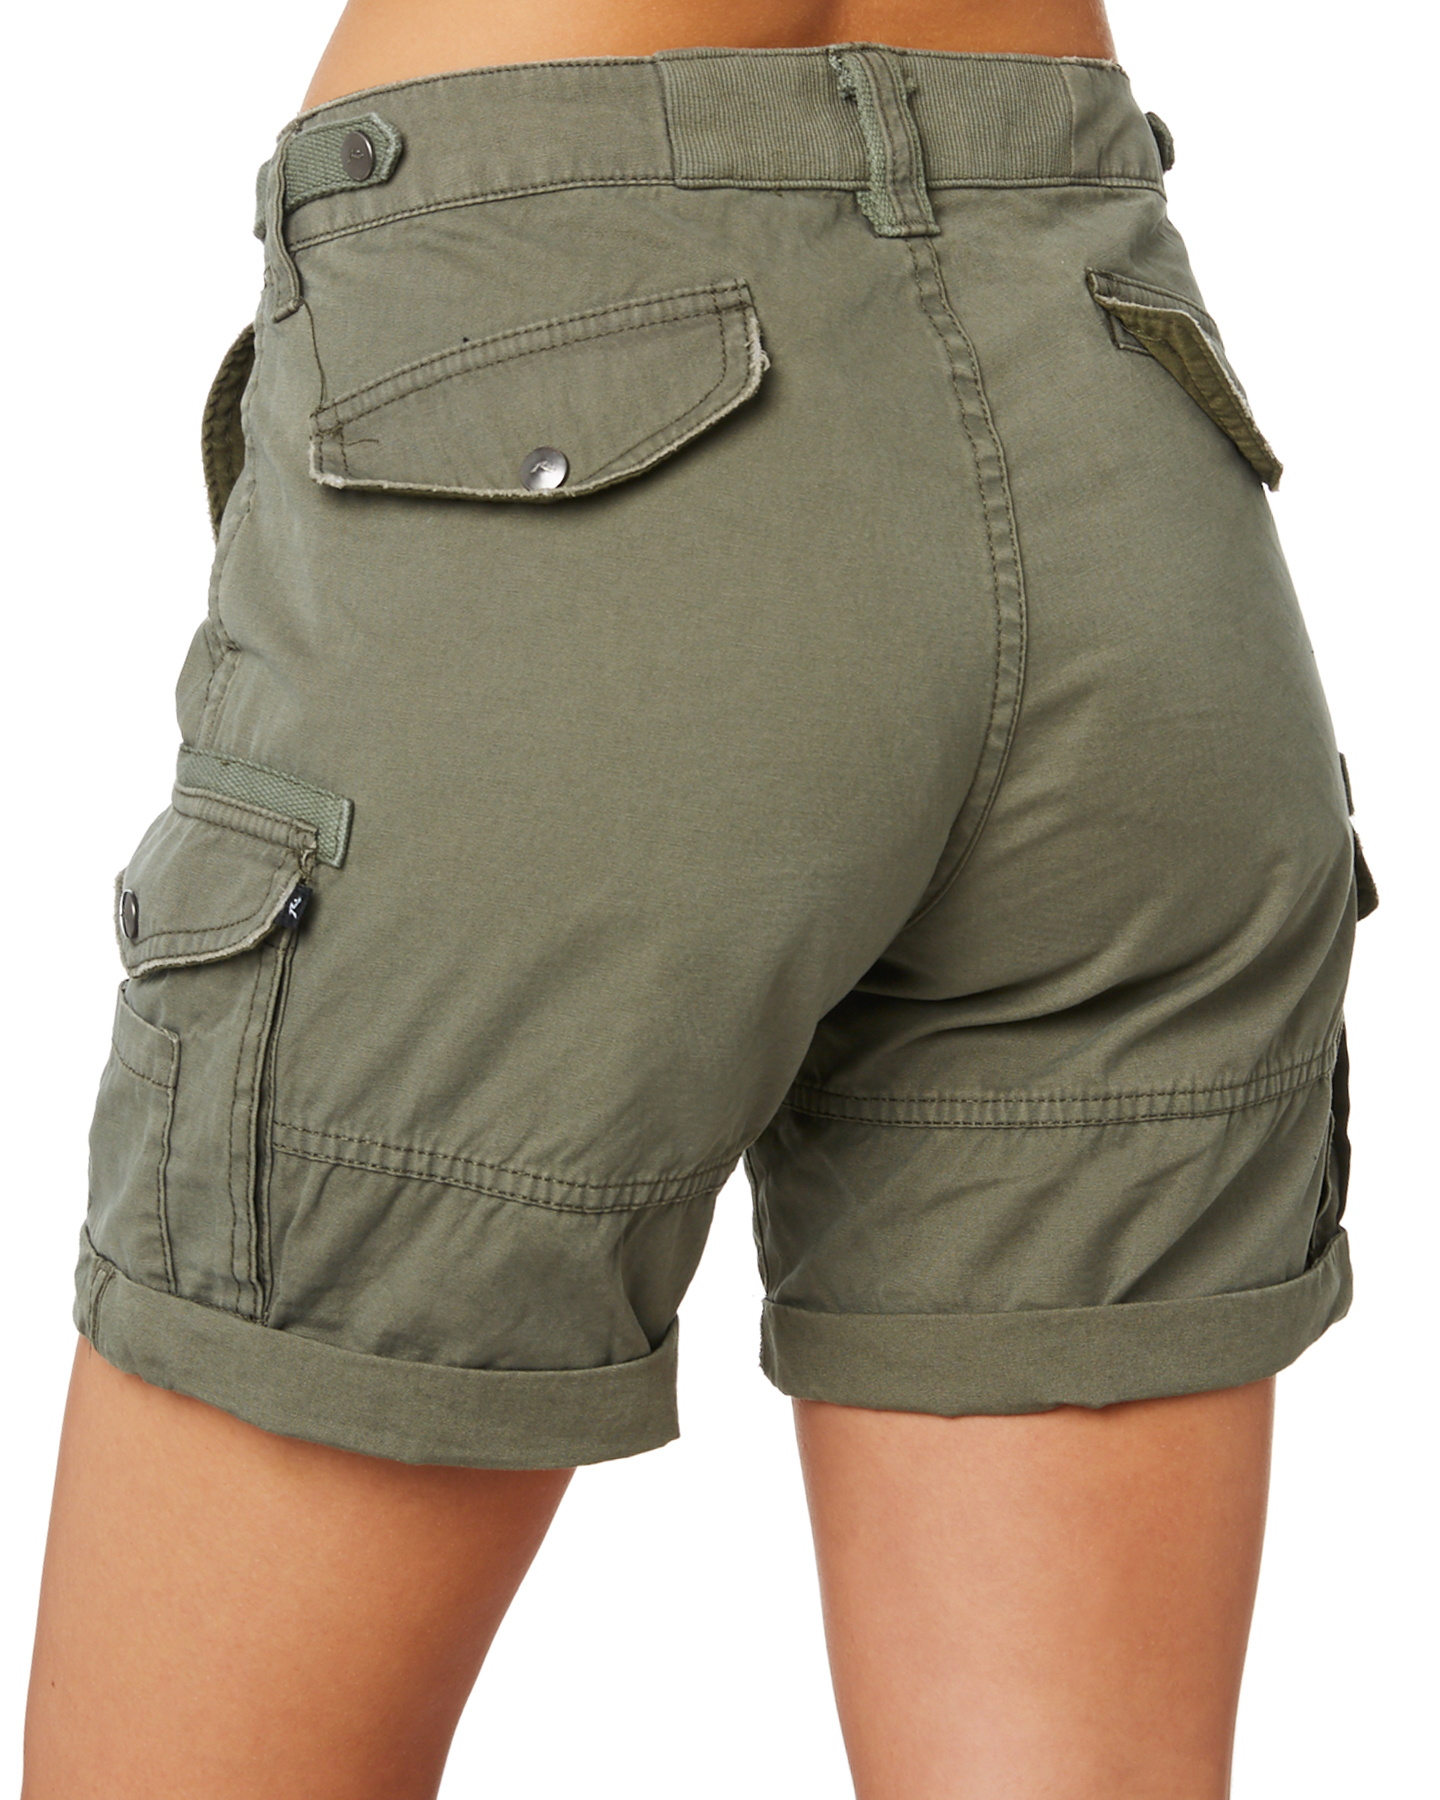 Find great deals on eBay for womens khaki cargo shorts. Shop with confidence.